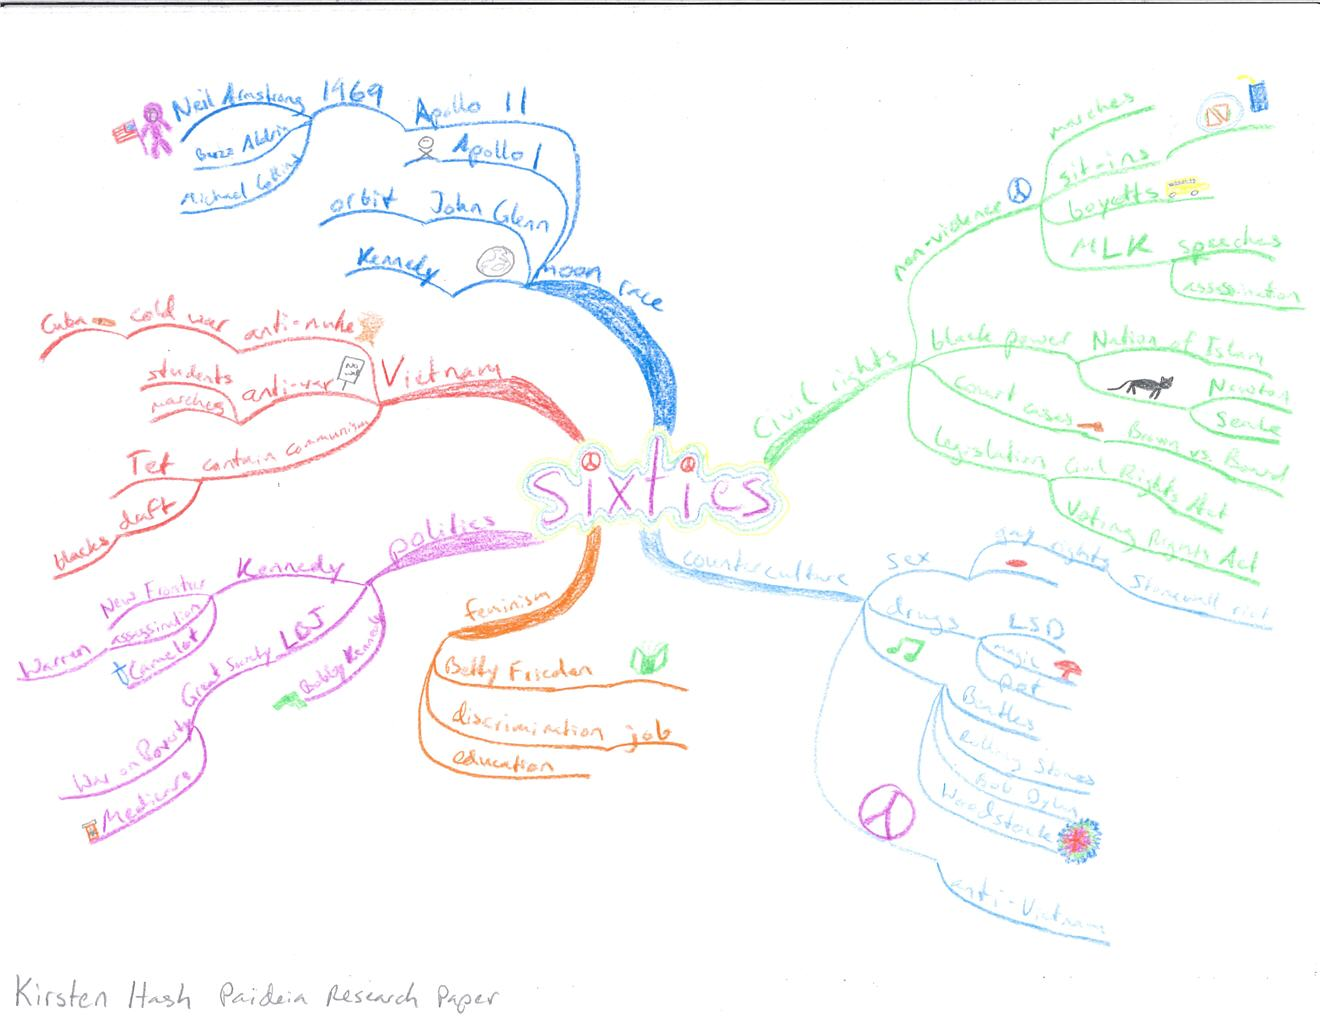 Kirsten-Hash-Idea-Map-or-Mind-Map-of-the-History-of-the-1960s Examples Of Conformity In Movies on examples of medical flow charts, outlaw biker movies, examples of peer pressure, examples of nonconformity in society,